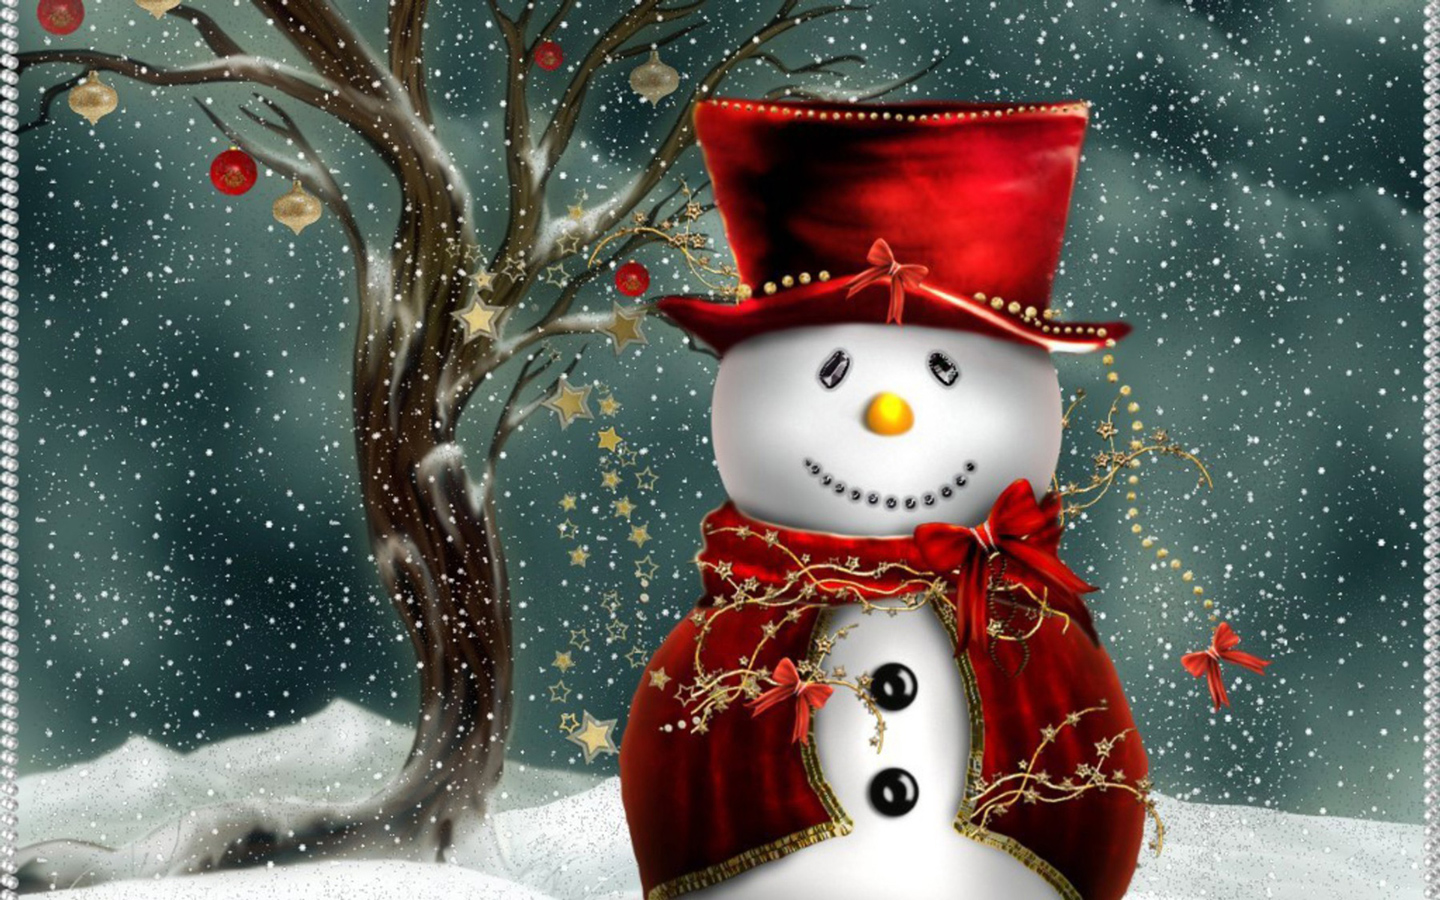 Cute Christmas Snowman computer desktop wallpaper 1440x900